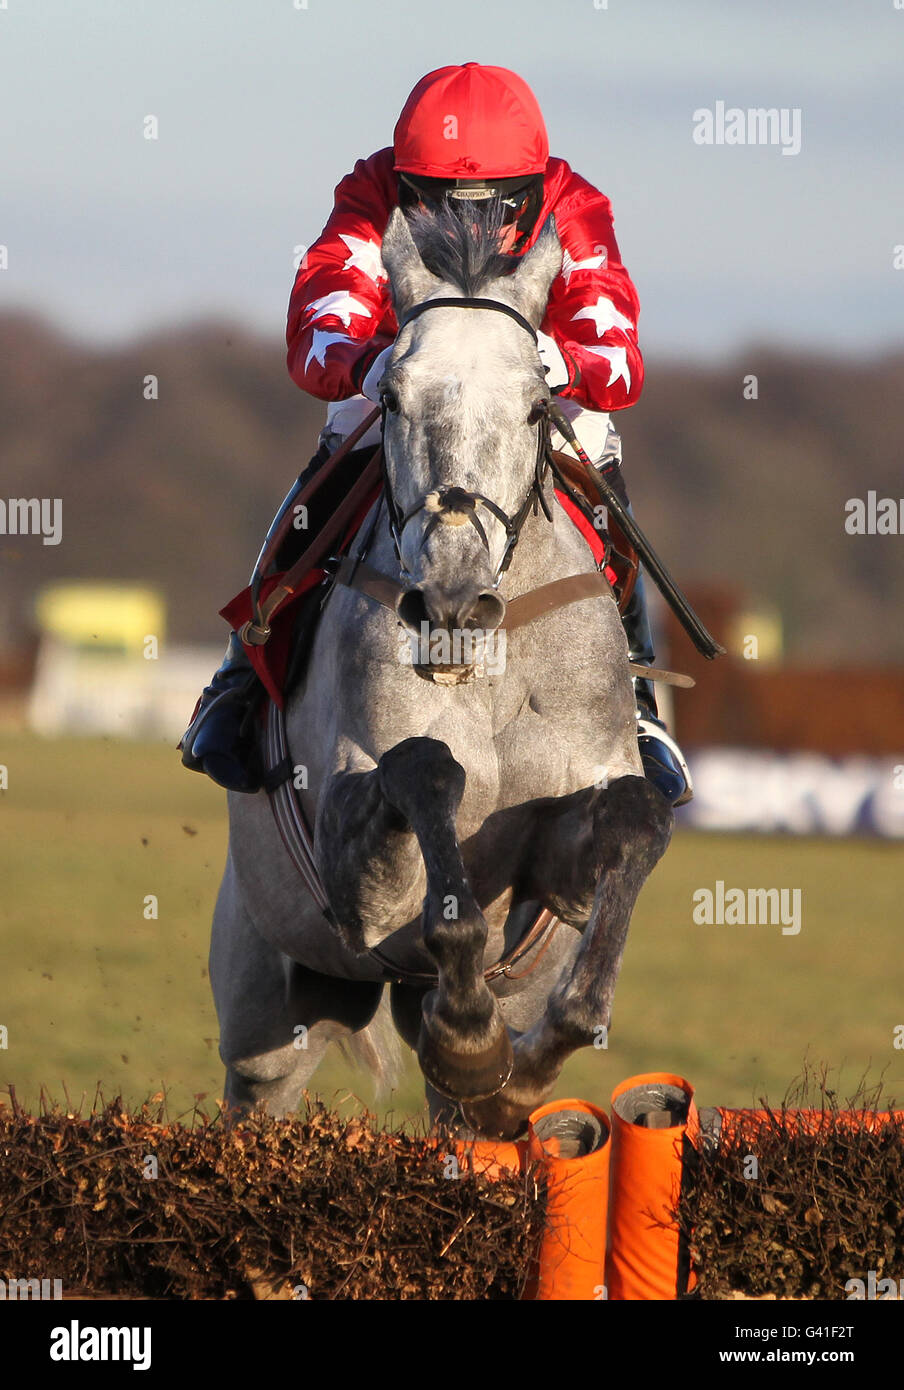 Horse Racing - Skybet Chase incontro - Doncaster Racecourse Immagini Stock